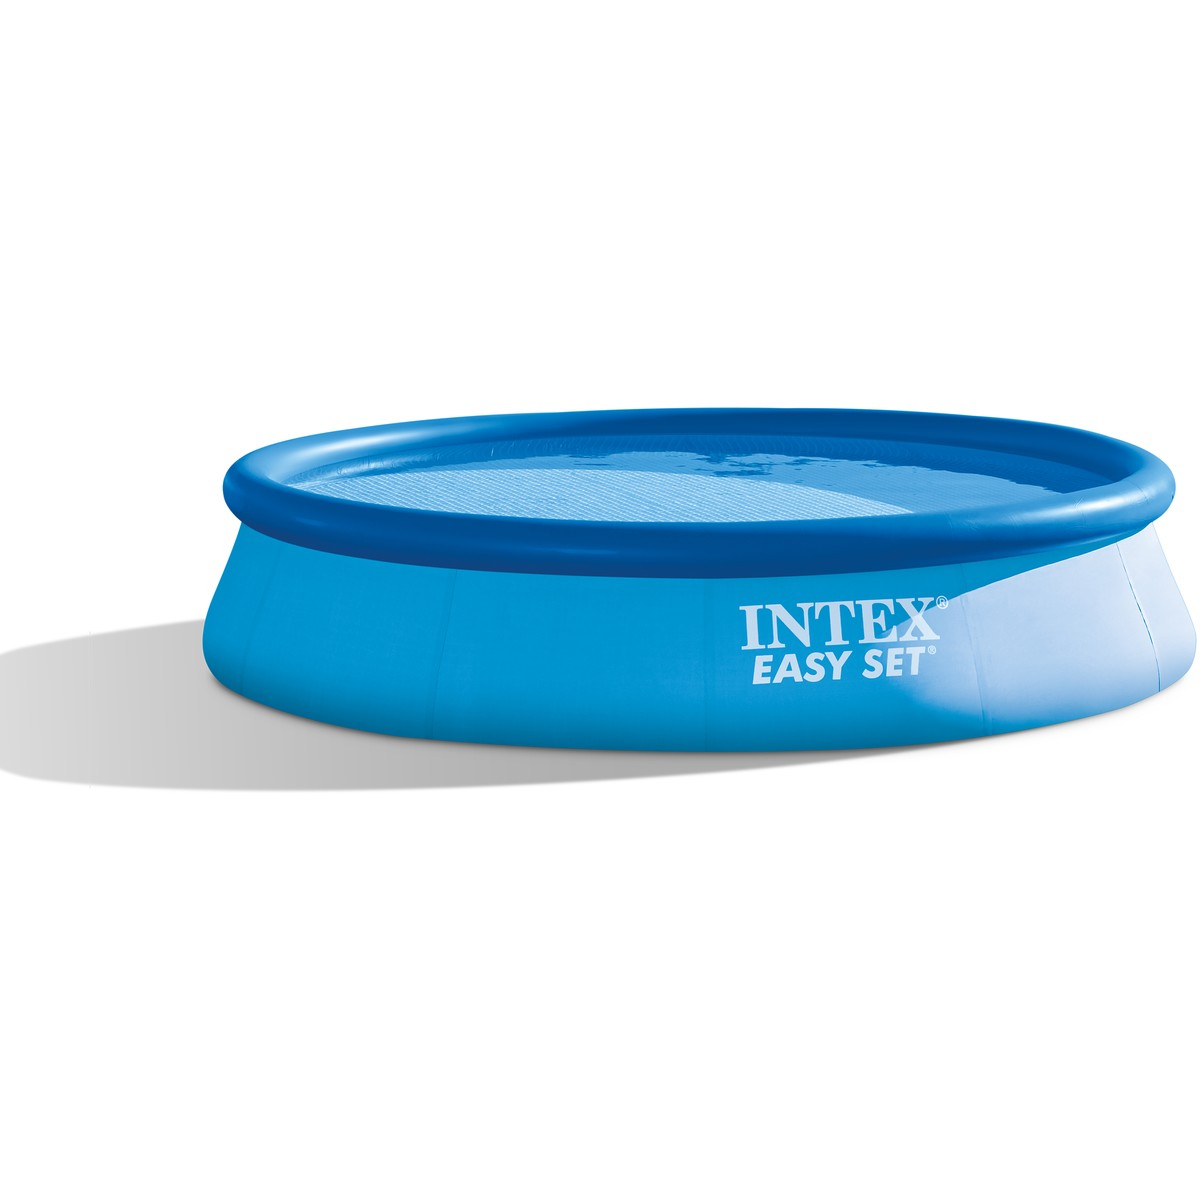 Intex 12 Foot Easy Set Pool concernant Piscine Intex 3.66